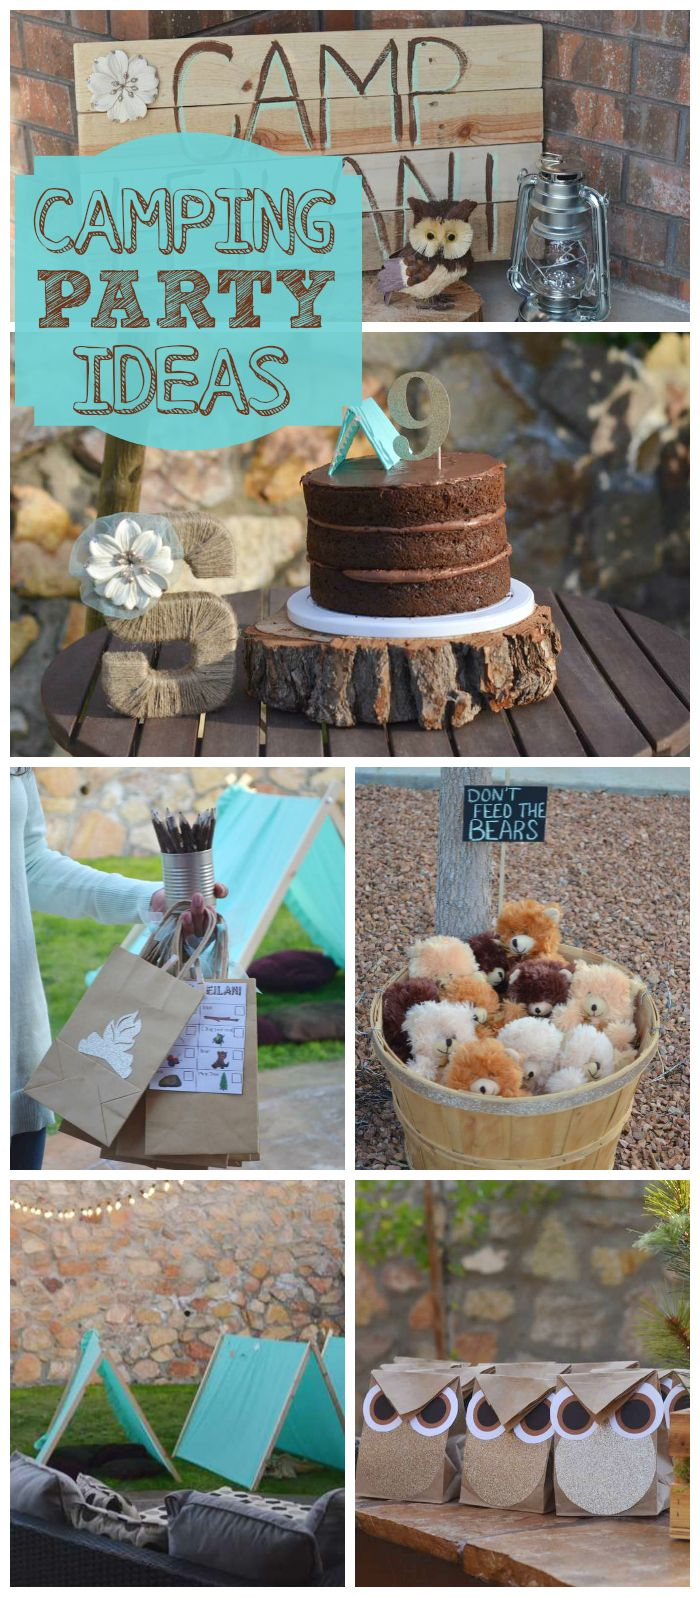 A fun backyard camping girl birthday party with turquoise tents, cake and a scavenger hunt! See more party planning ideas at CatchMyParty.com!